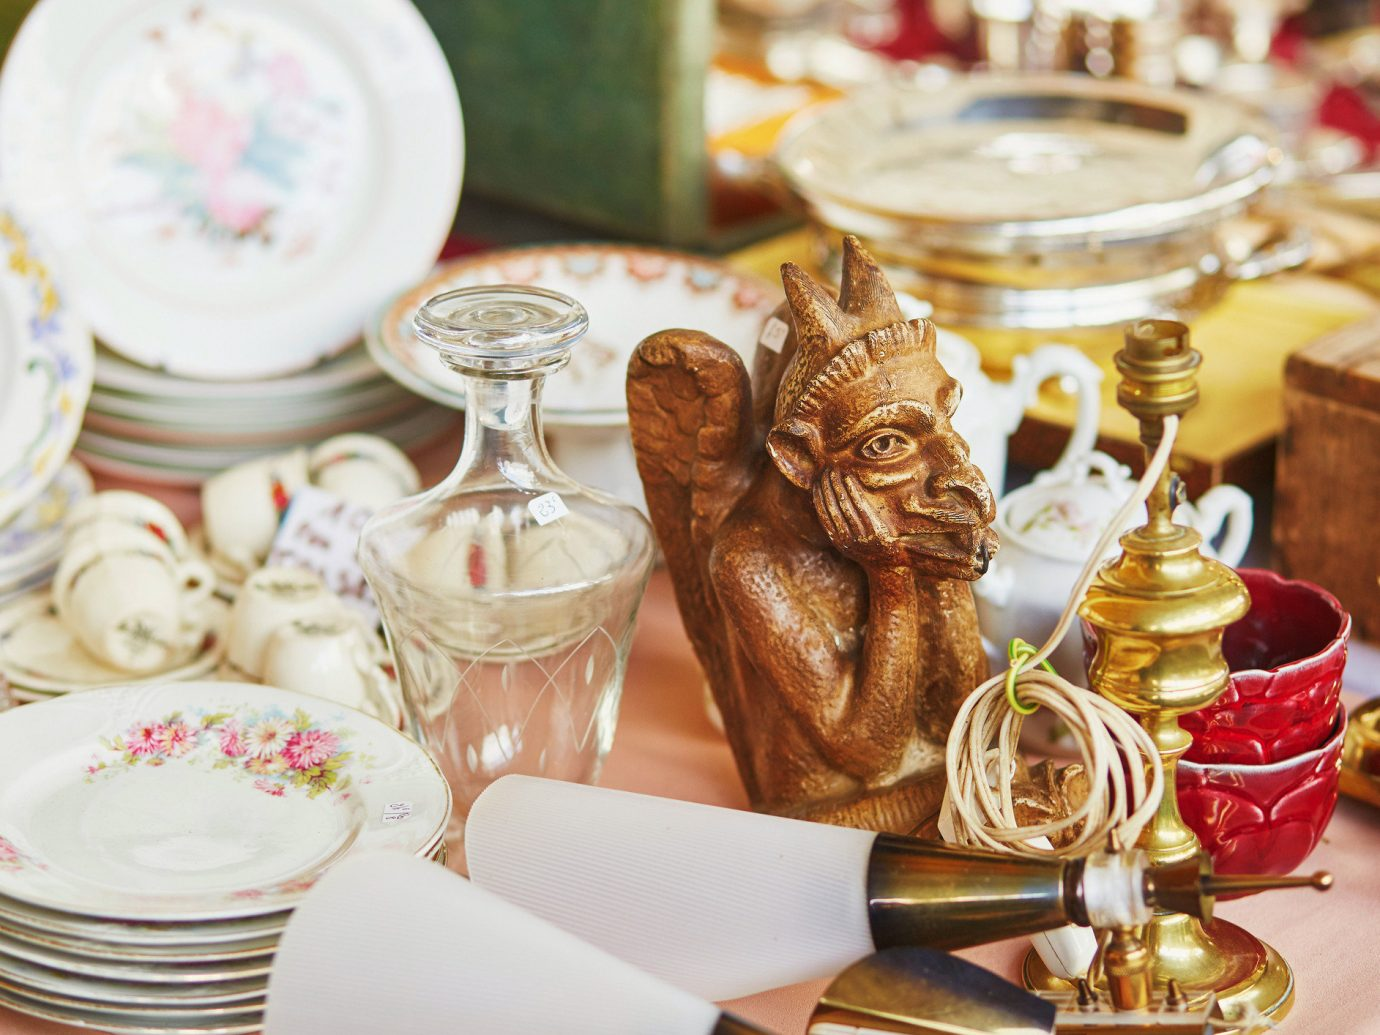 Trip Ideas table indoor meal plate brunch dinner breakfast Party event centrepiece christmas dinner several